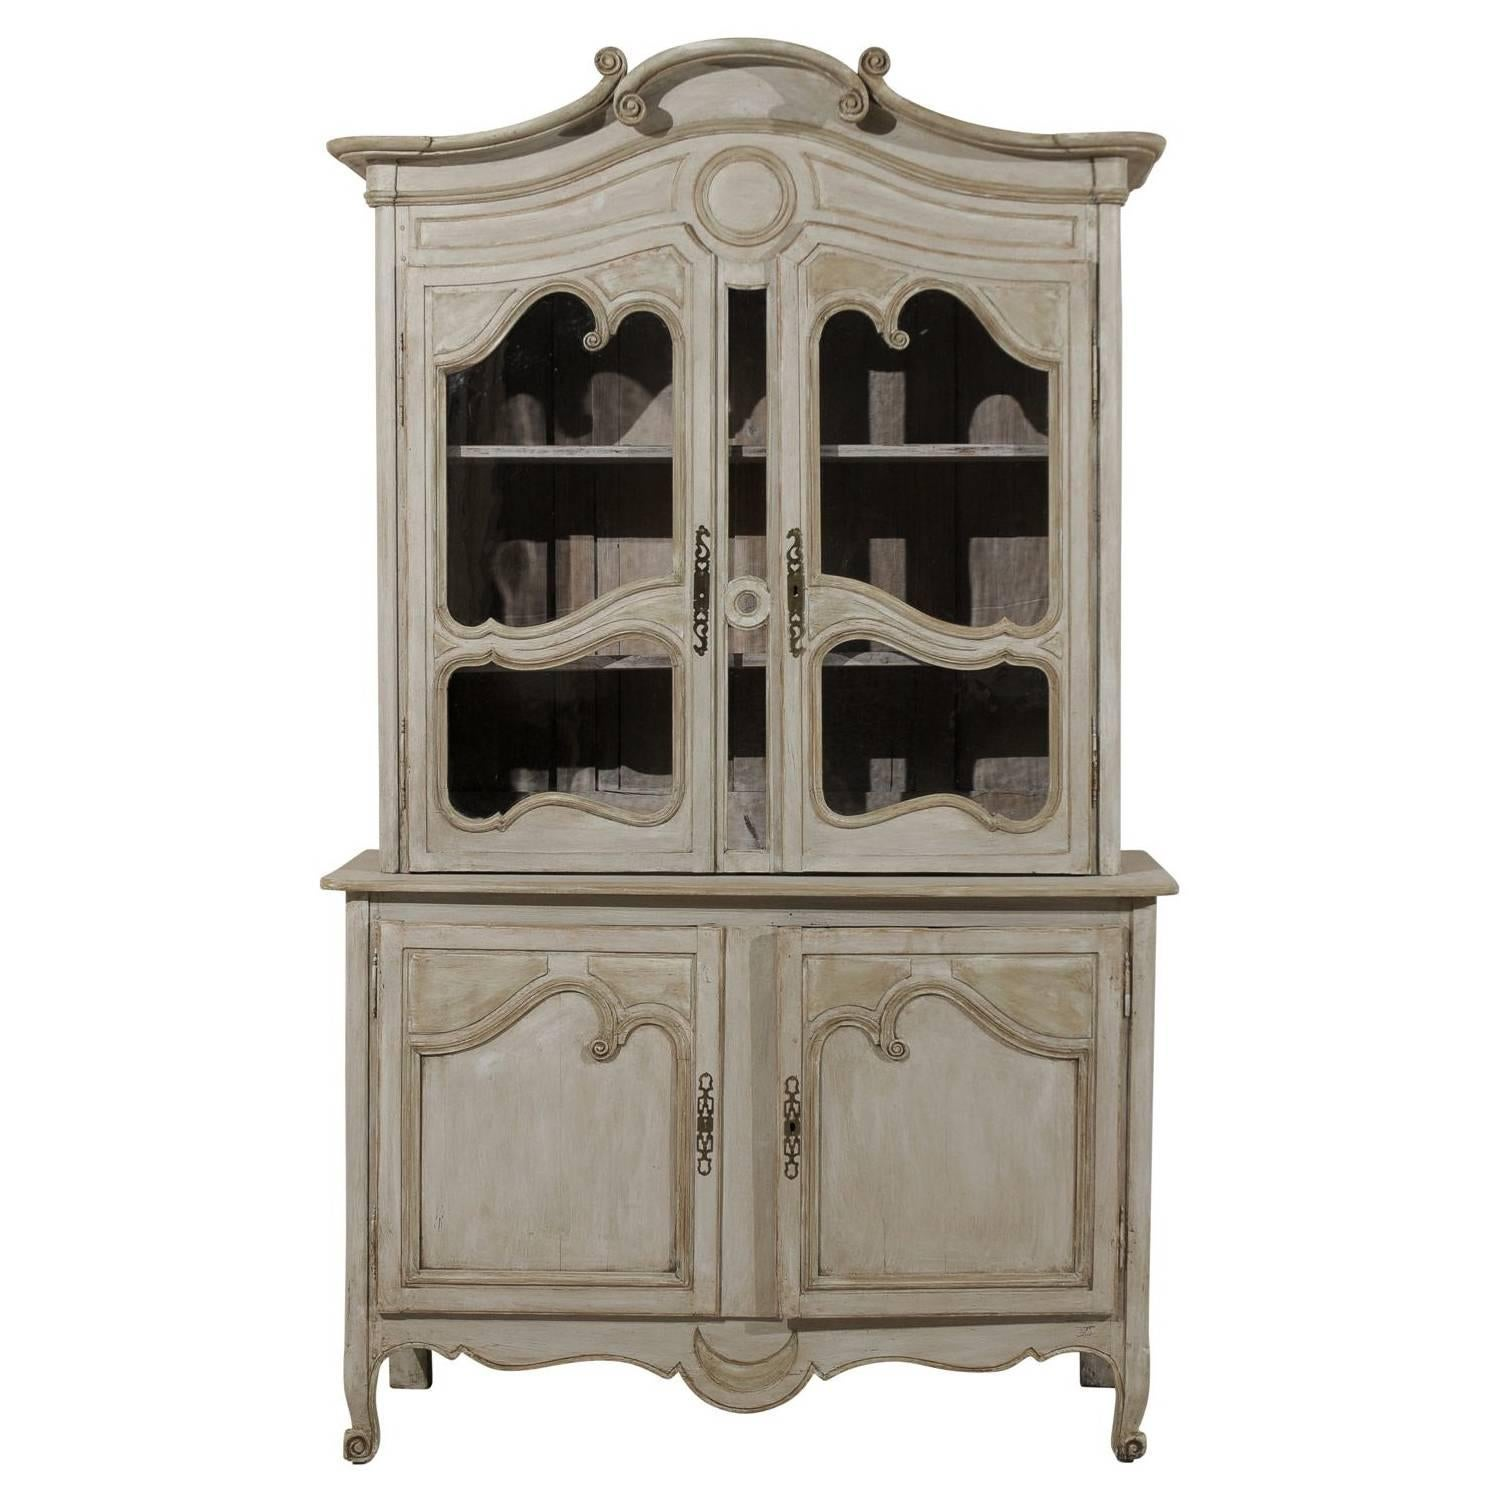 French Early 19th Century Painted Wood Buffet à Deux-Corps